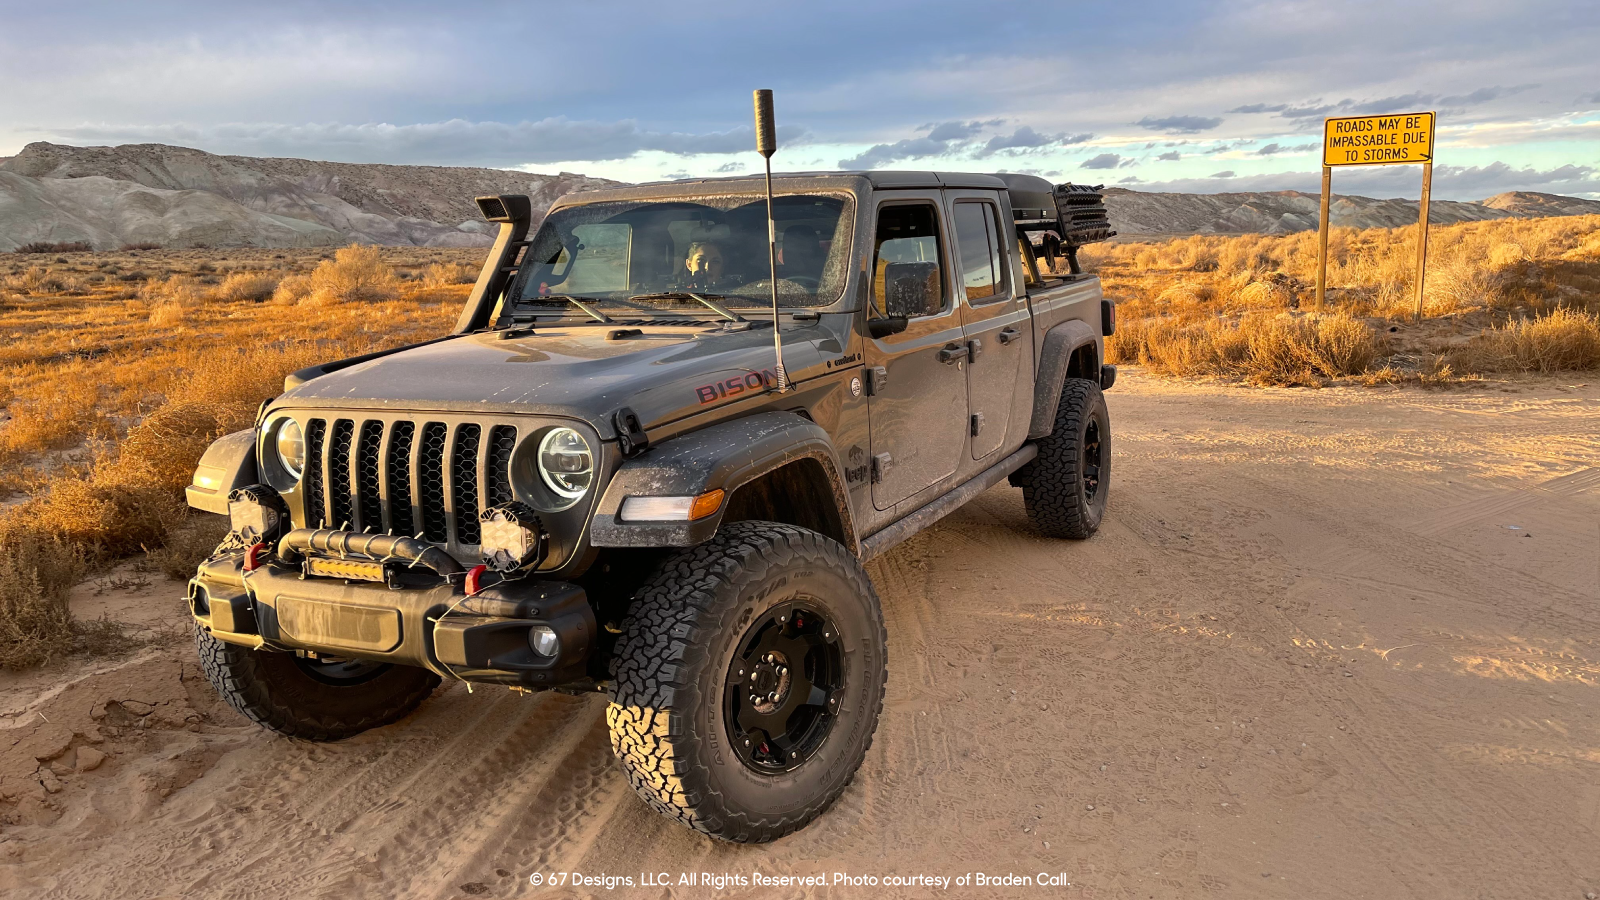 Sunset golden hour on the Jeep